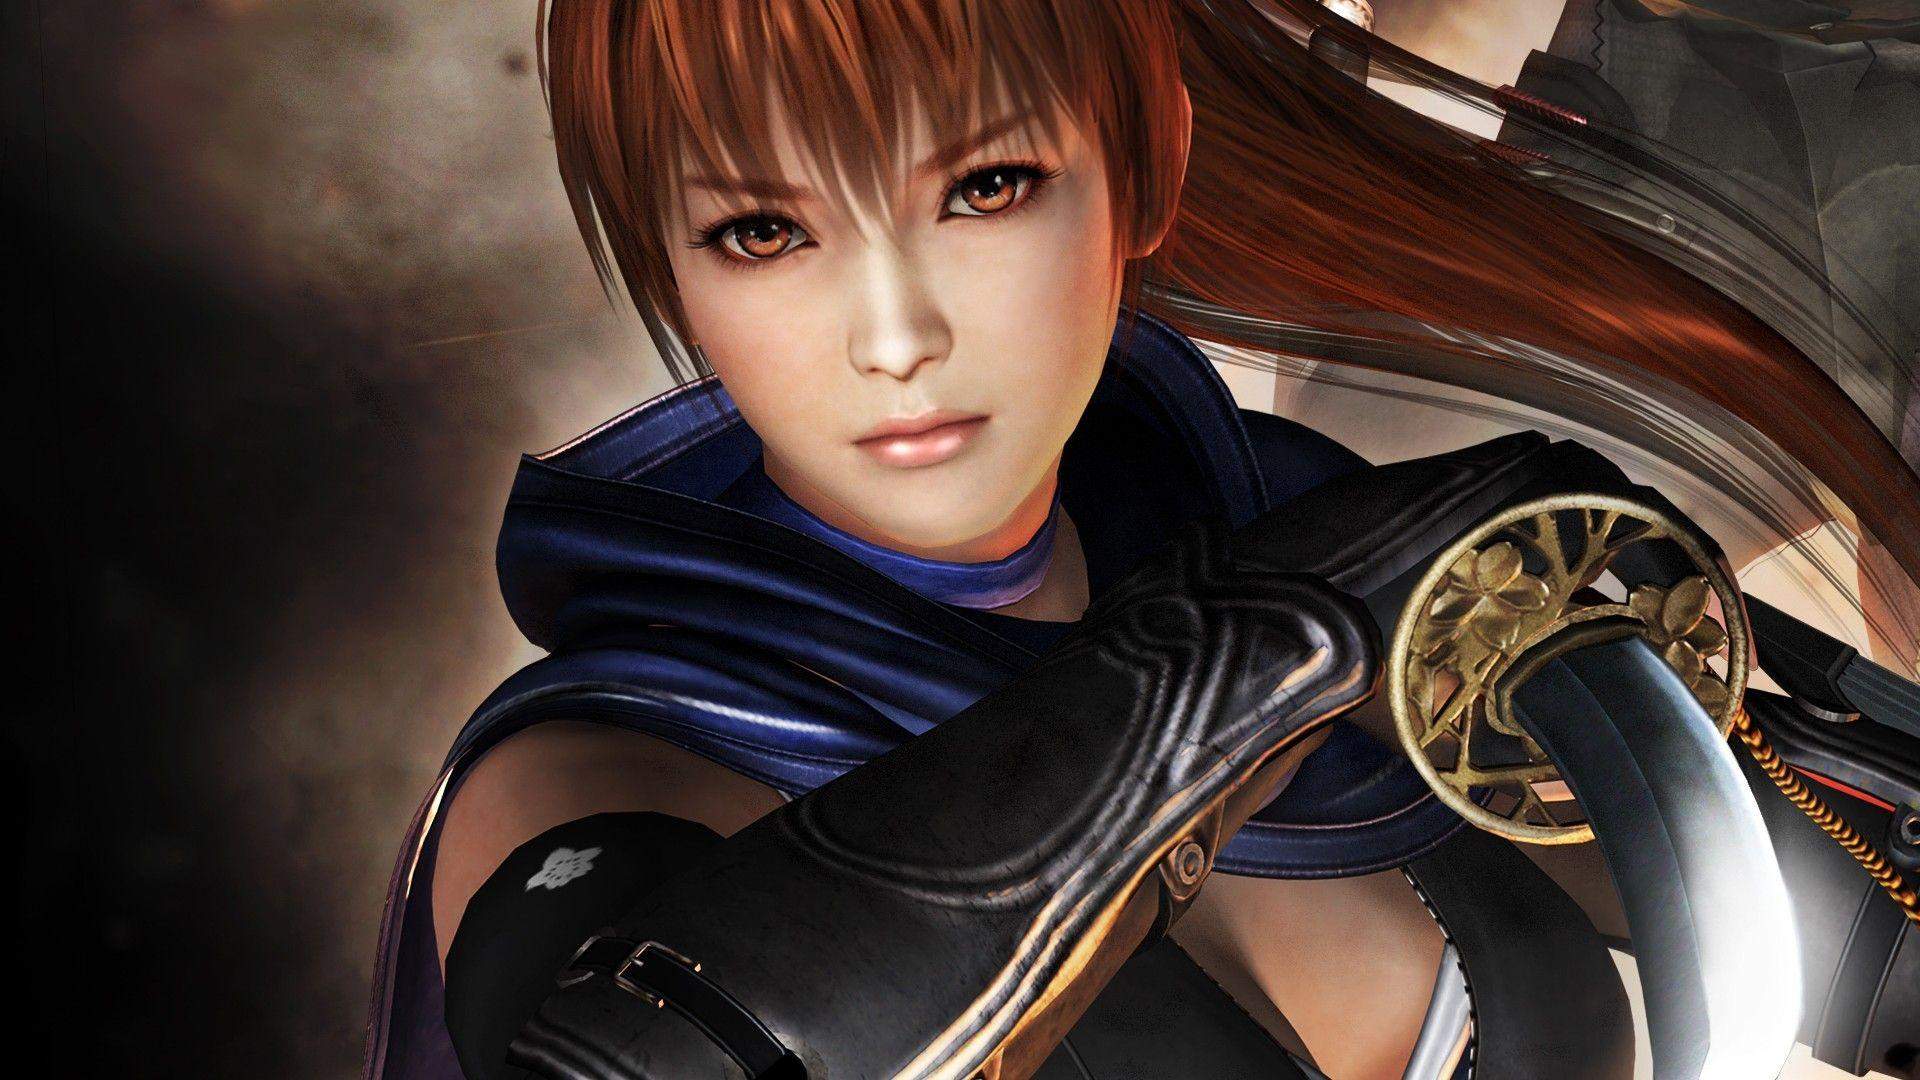 Ninja Gaiden Kasumi Wallpapers Wallpaper Cave